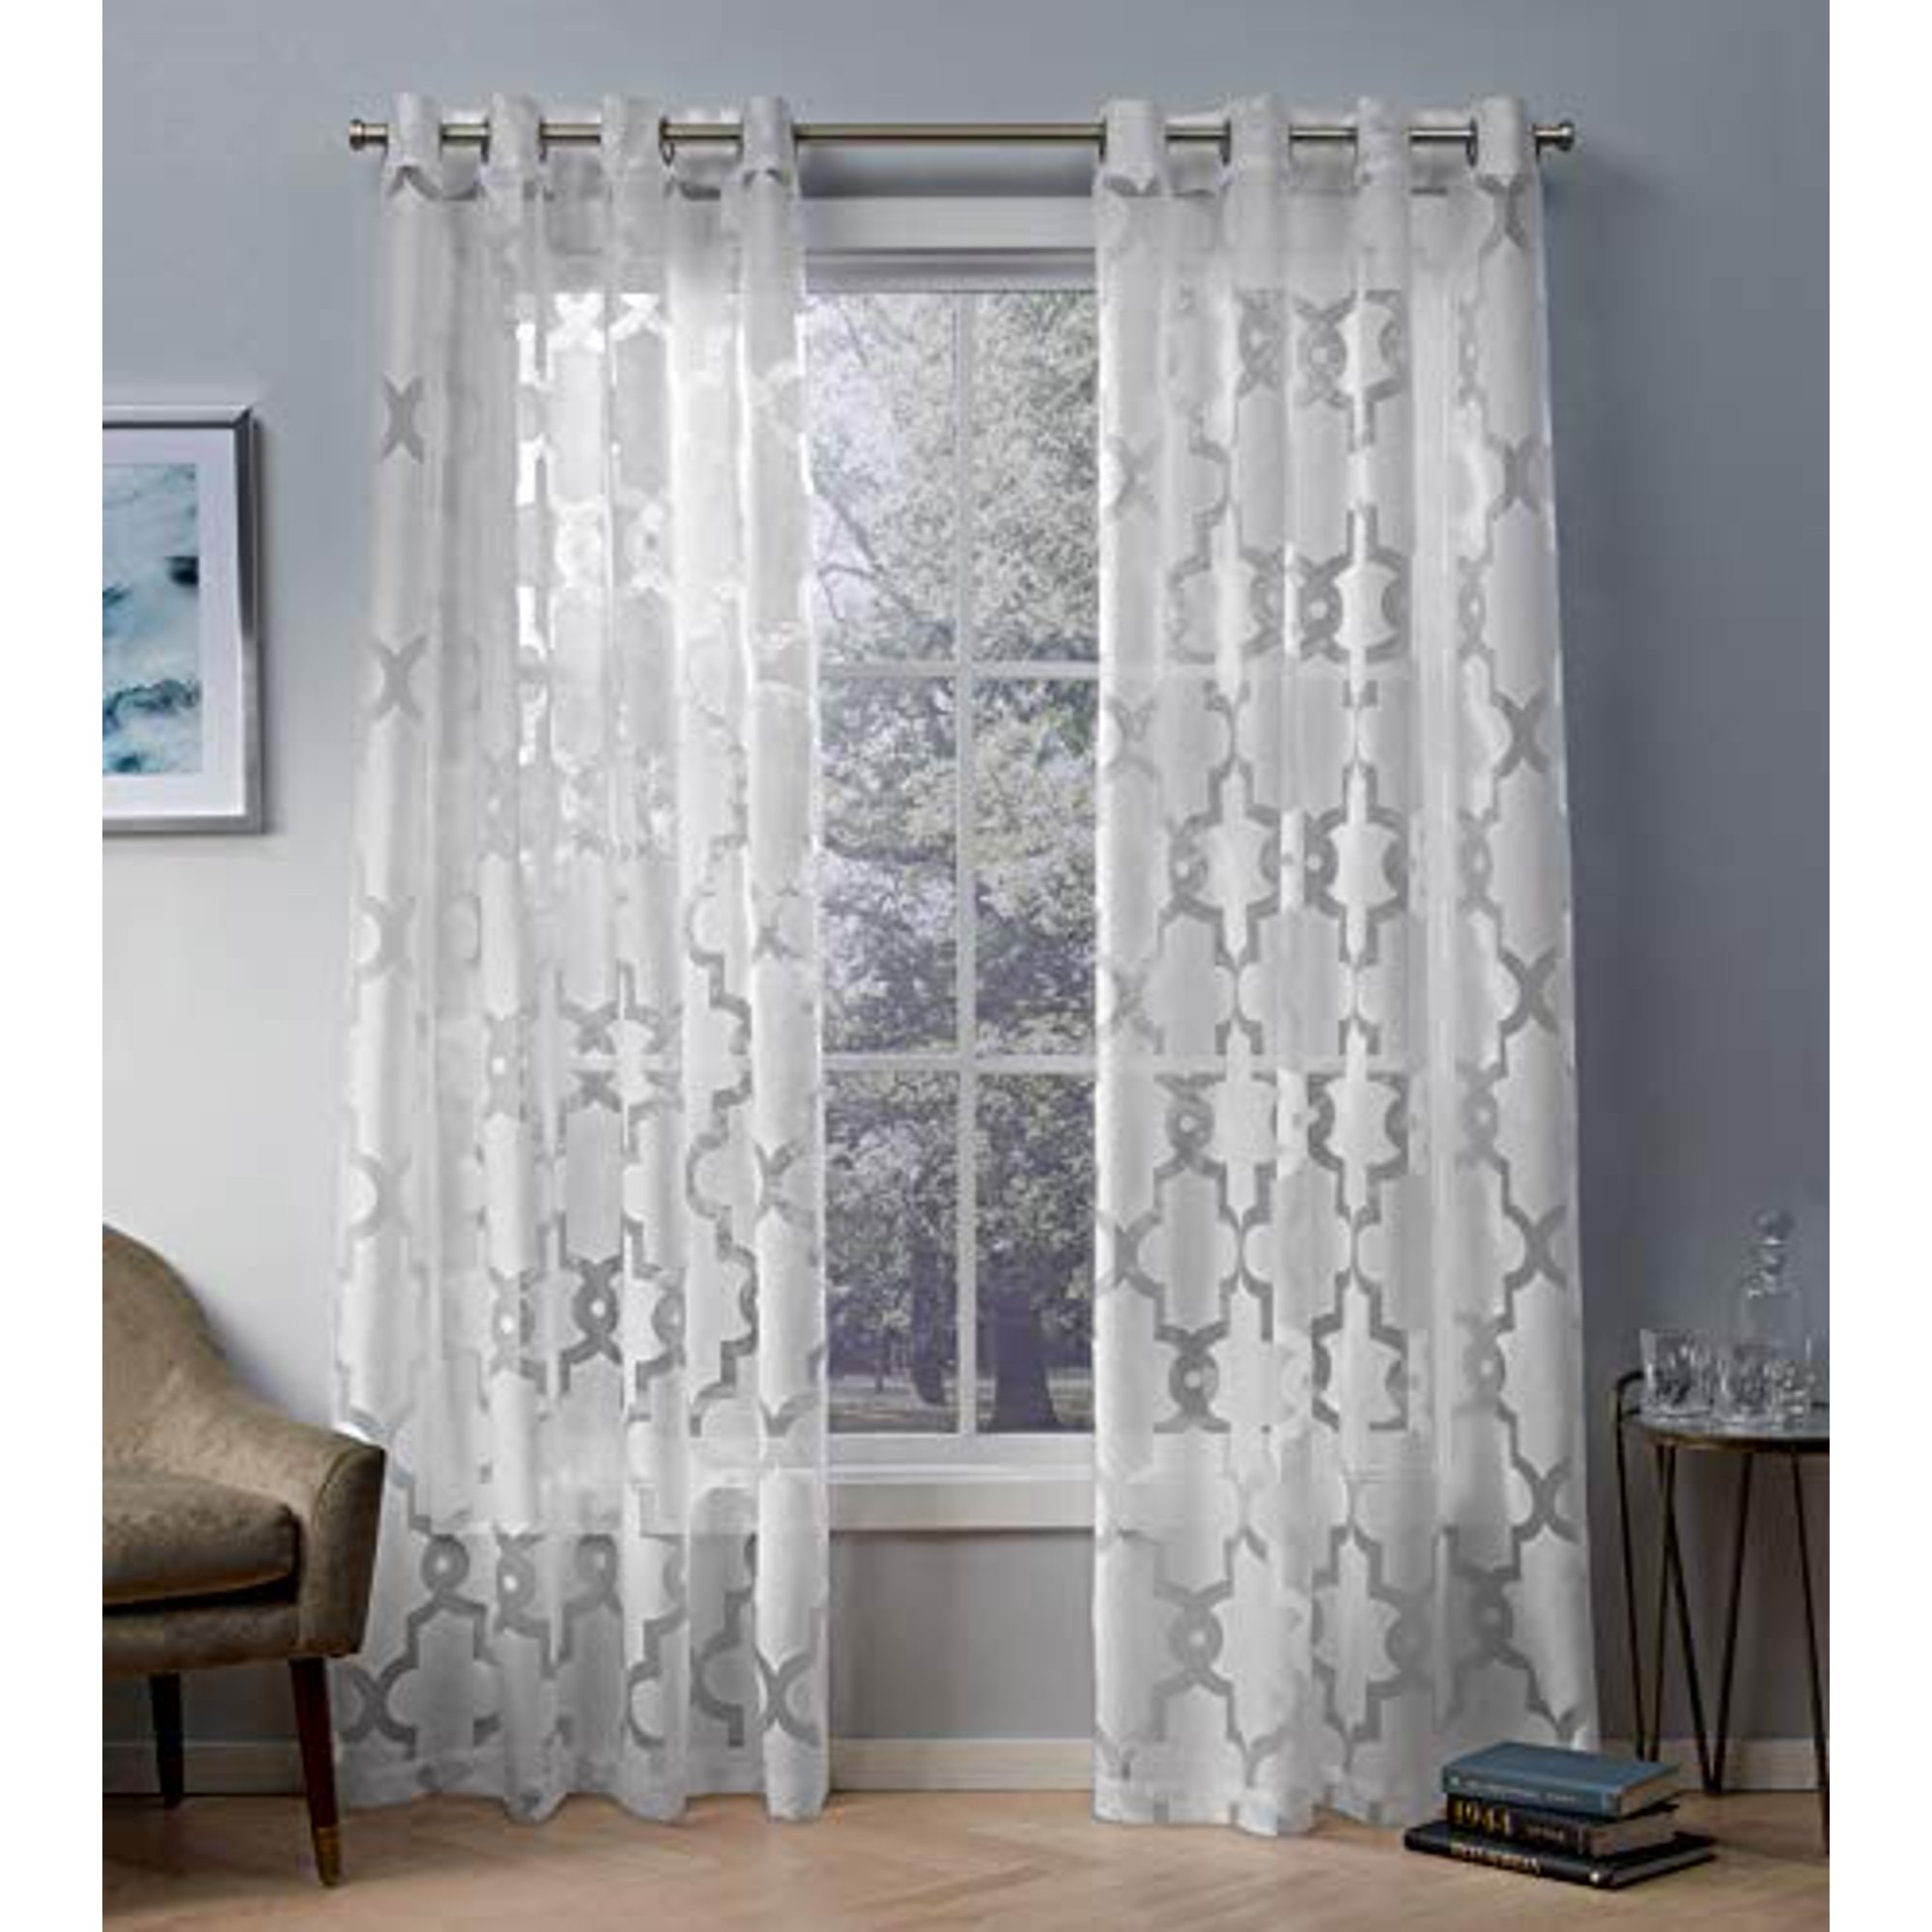 Exclusive Home Curtains Essex Geometric Sheer Burnout Window Curtain Panel Pair With Grommet Top 52x96 Winter White 2 Piece Walmart Canada